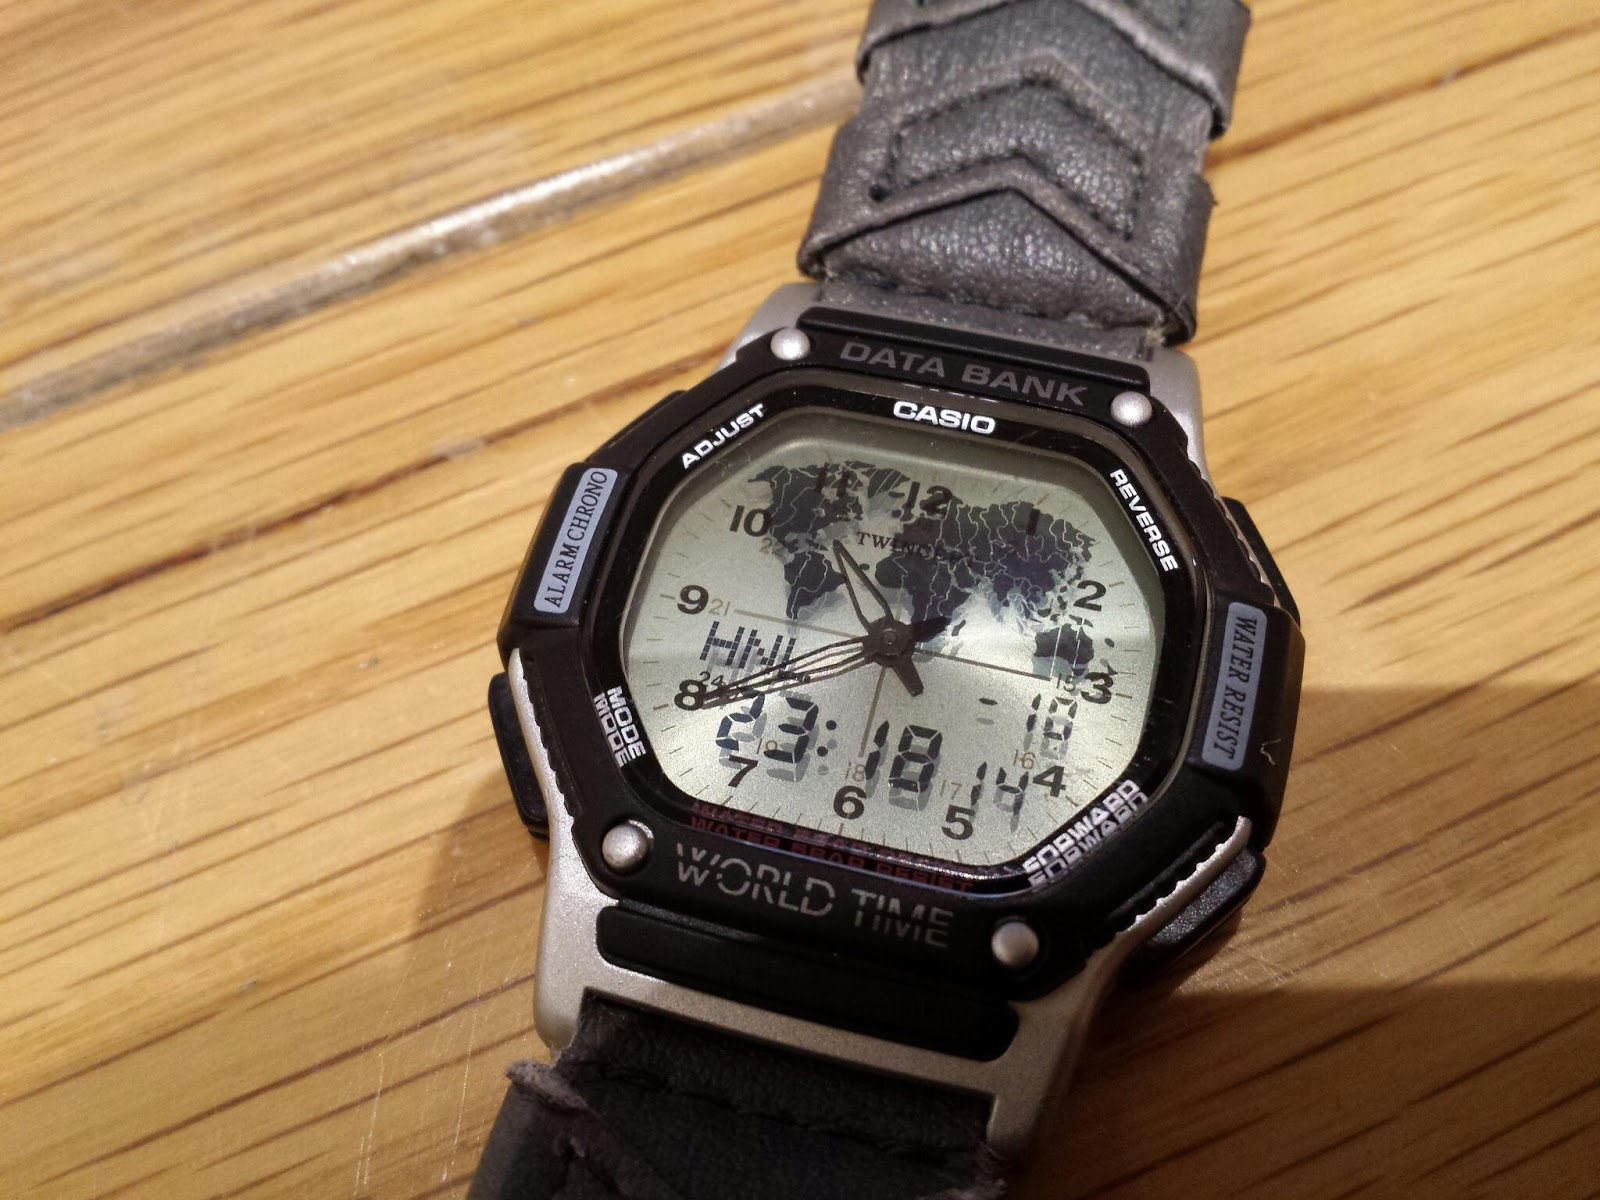 Casio World Map Watch.Which Watch Today Casio Twincept World Time Data Bank Abx 58